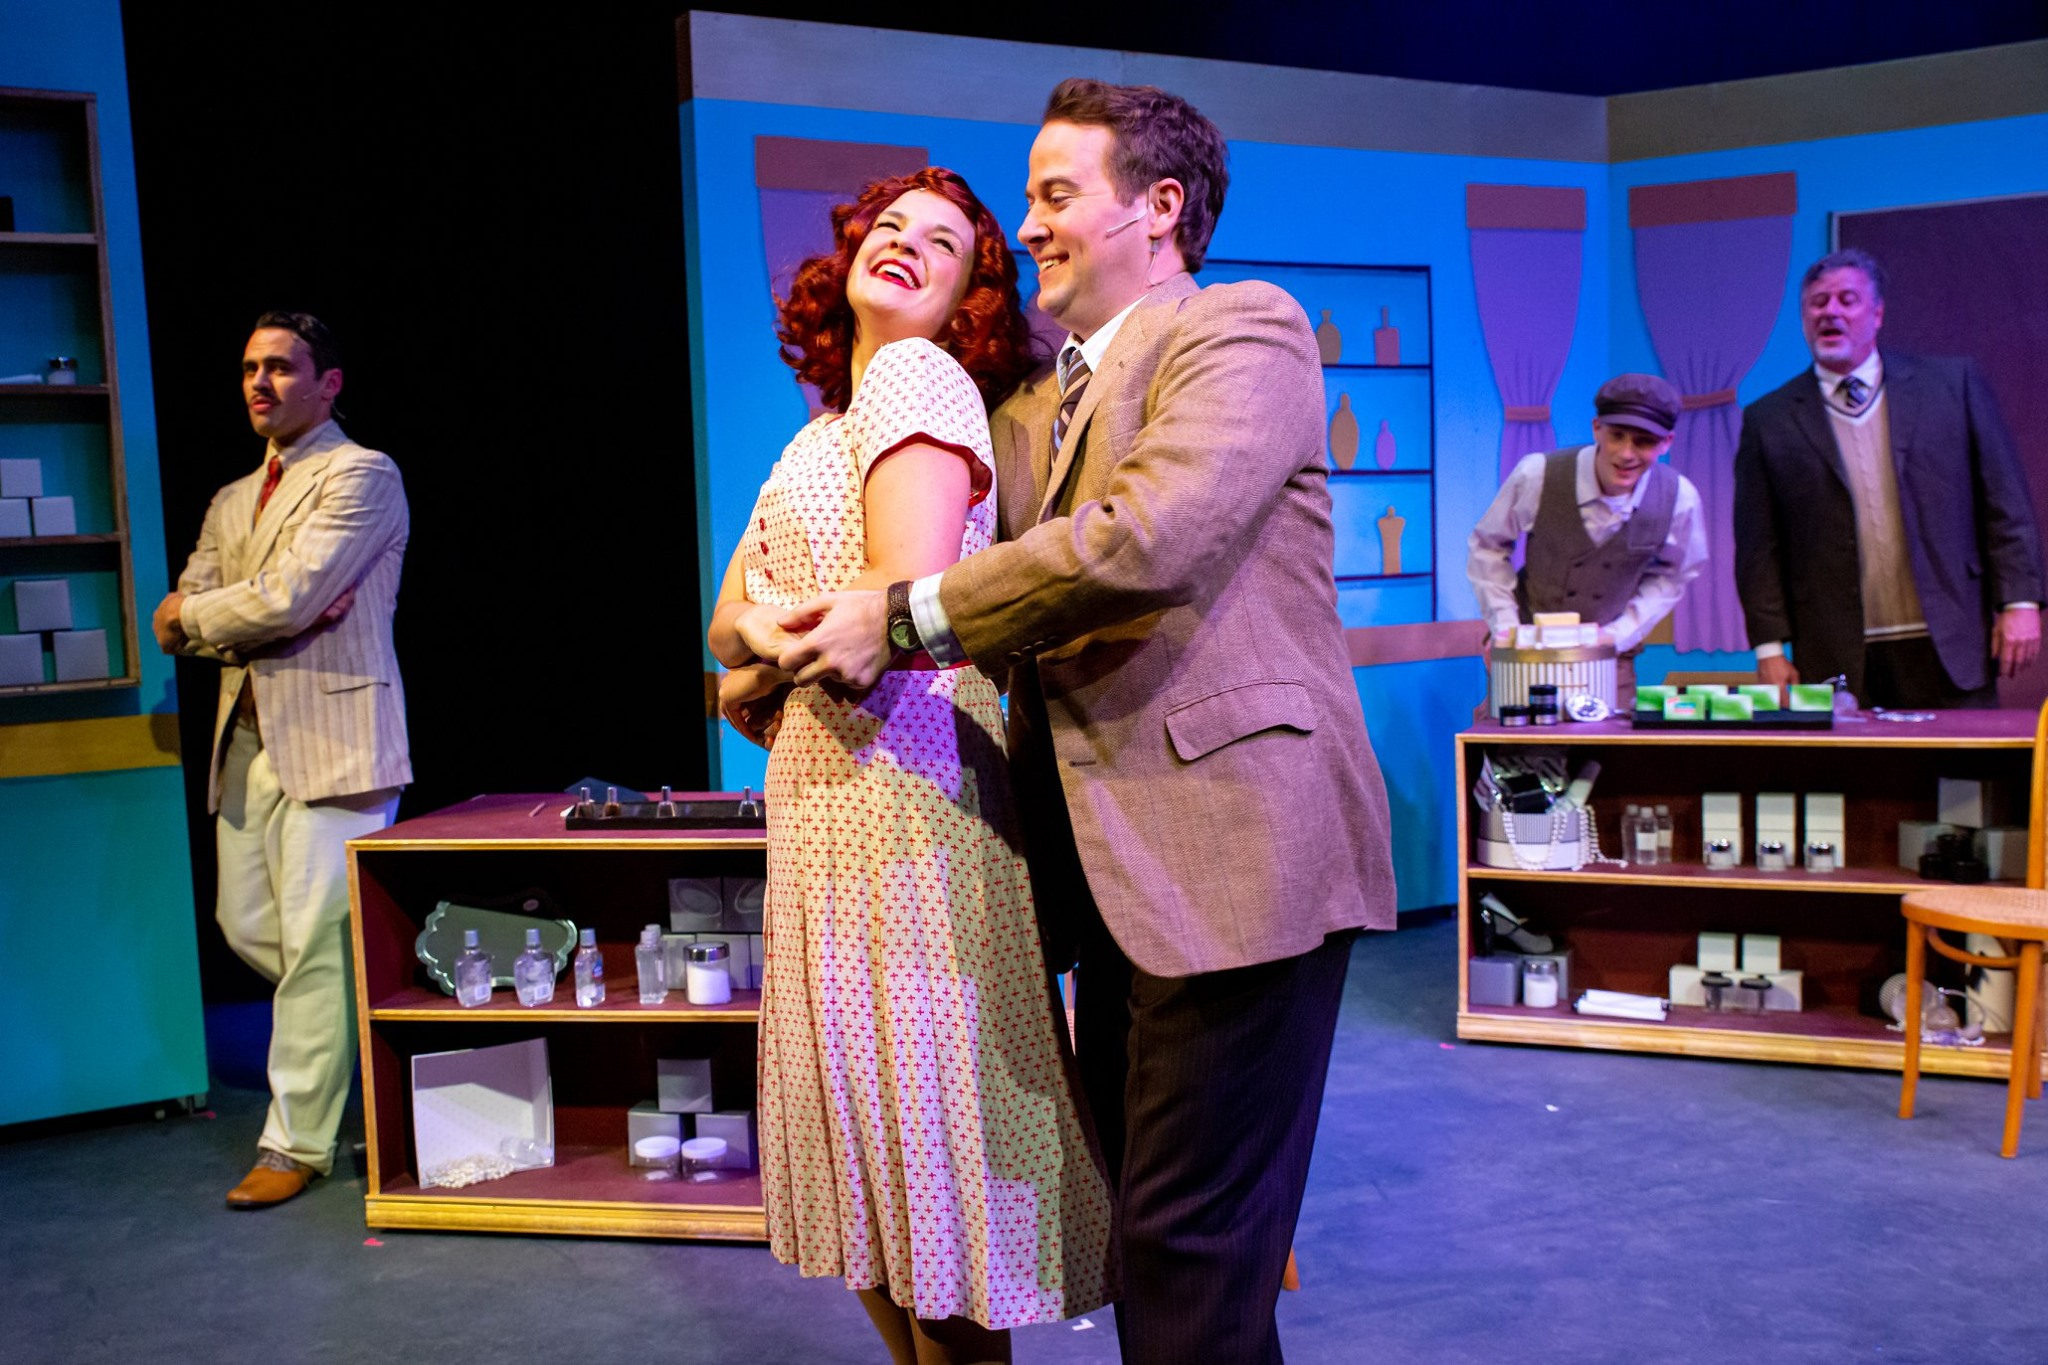 uploads/production_images/she-loves-me-austin-playhouse-errich-petersen-2019/75543589_10157365943819475_5018736145131896832_o.jpg